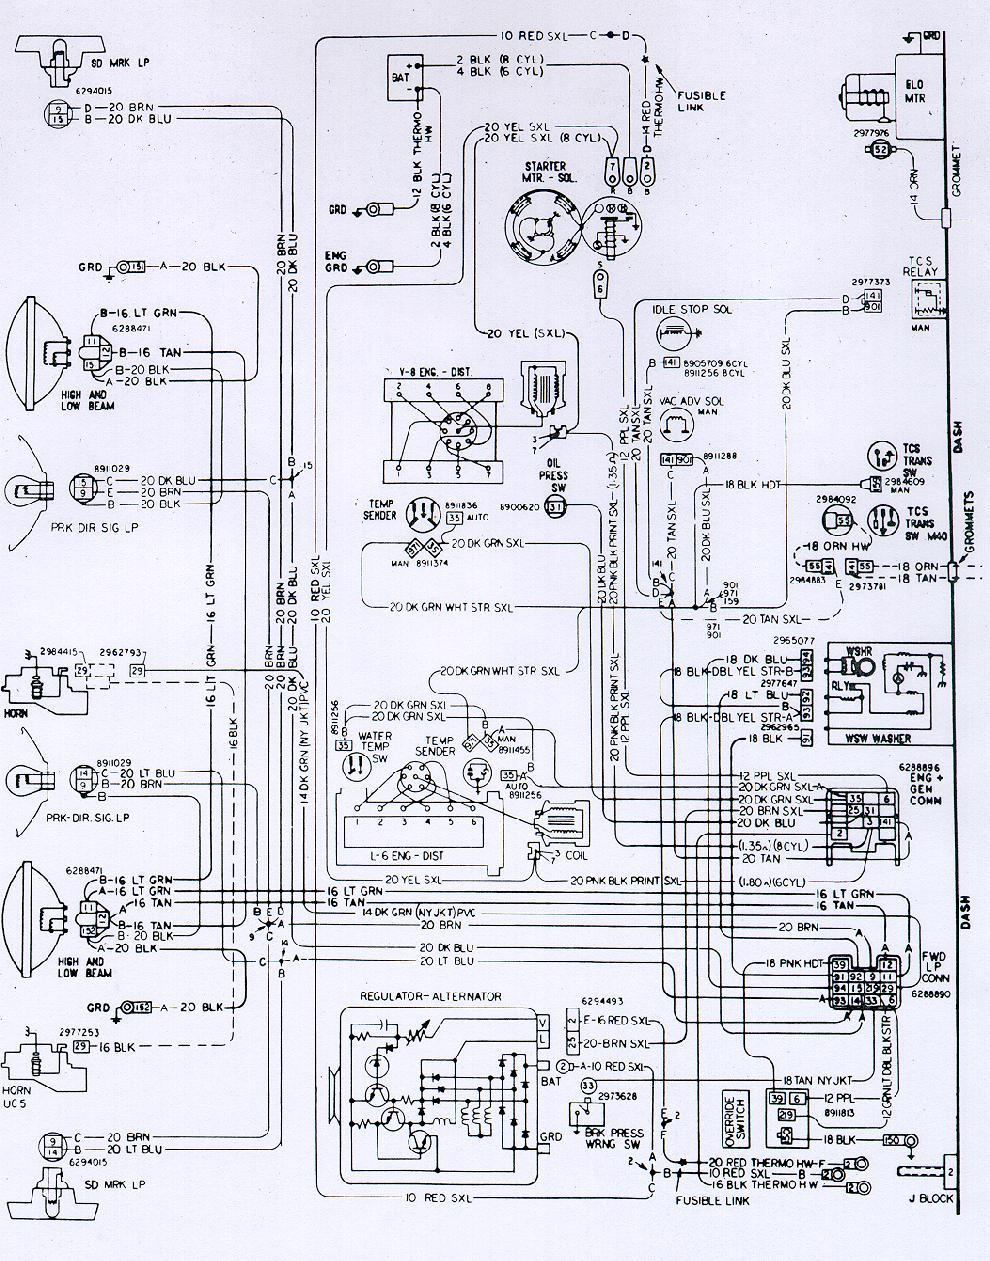 hight resolution of camaro wiring electrical information 1995 camaro engine diagram 1995 camaro ignition switch wiring diagram